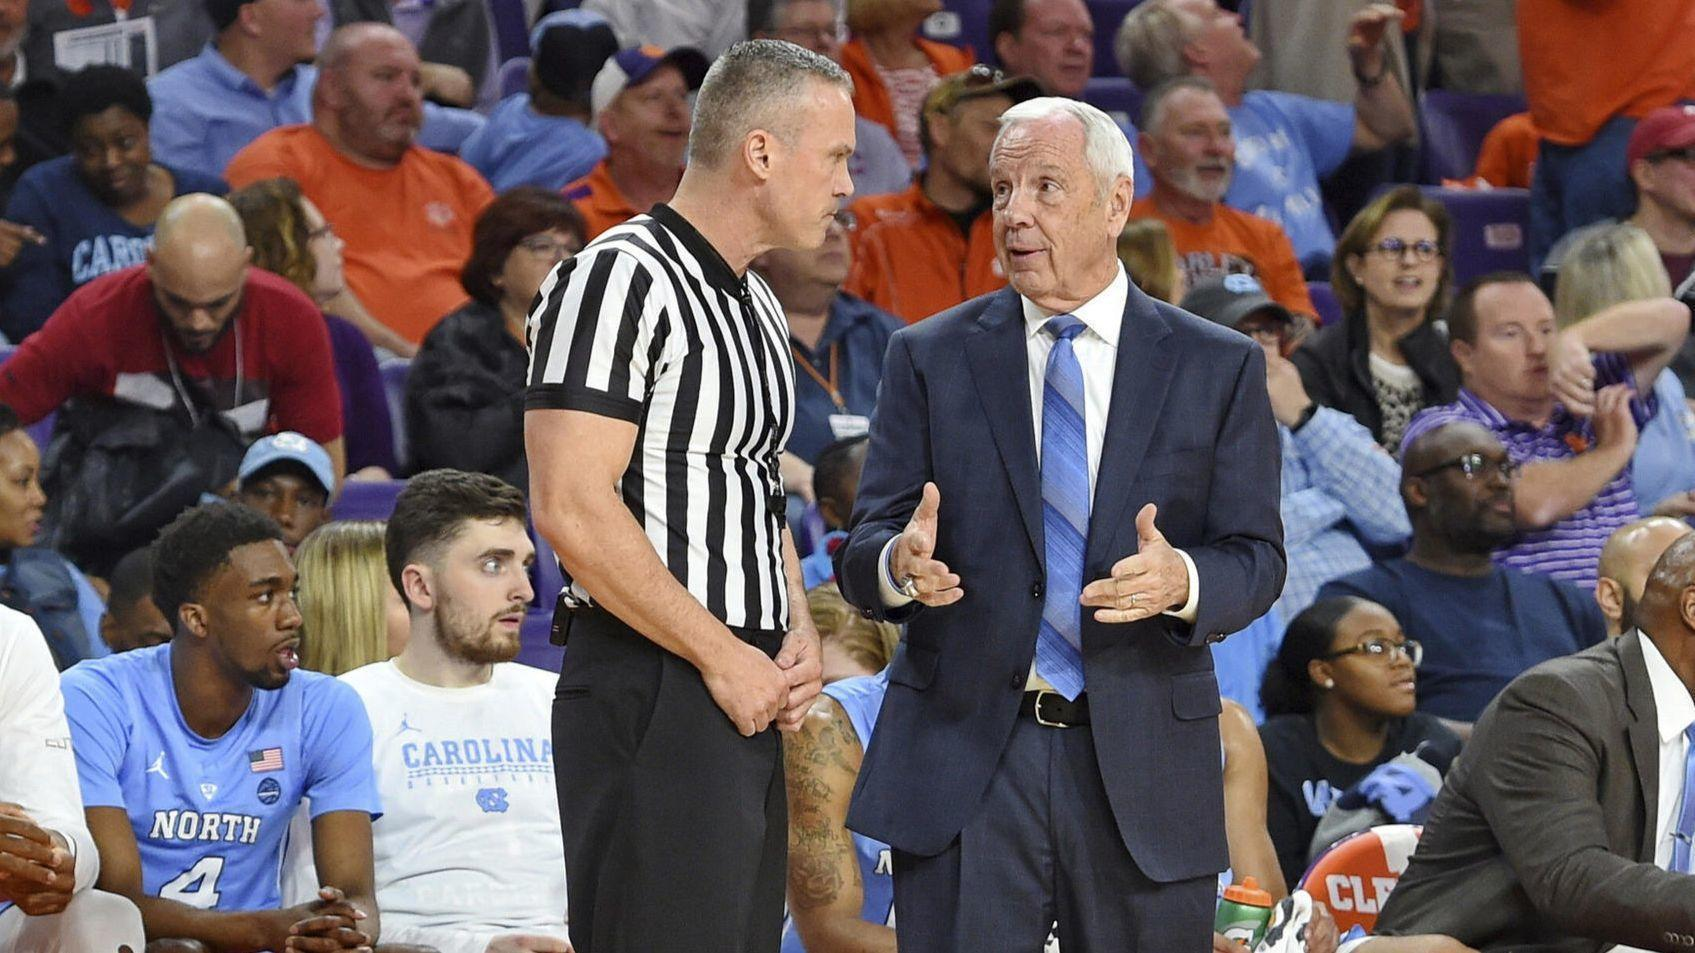 Roy Williams Falls Near Bench Helped Off Court During